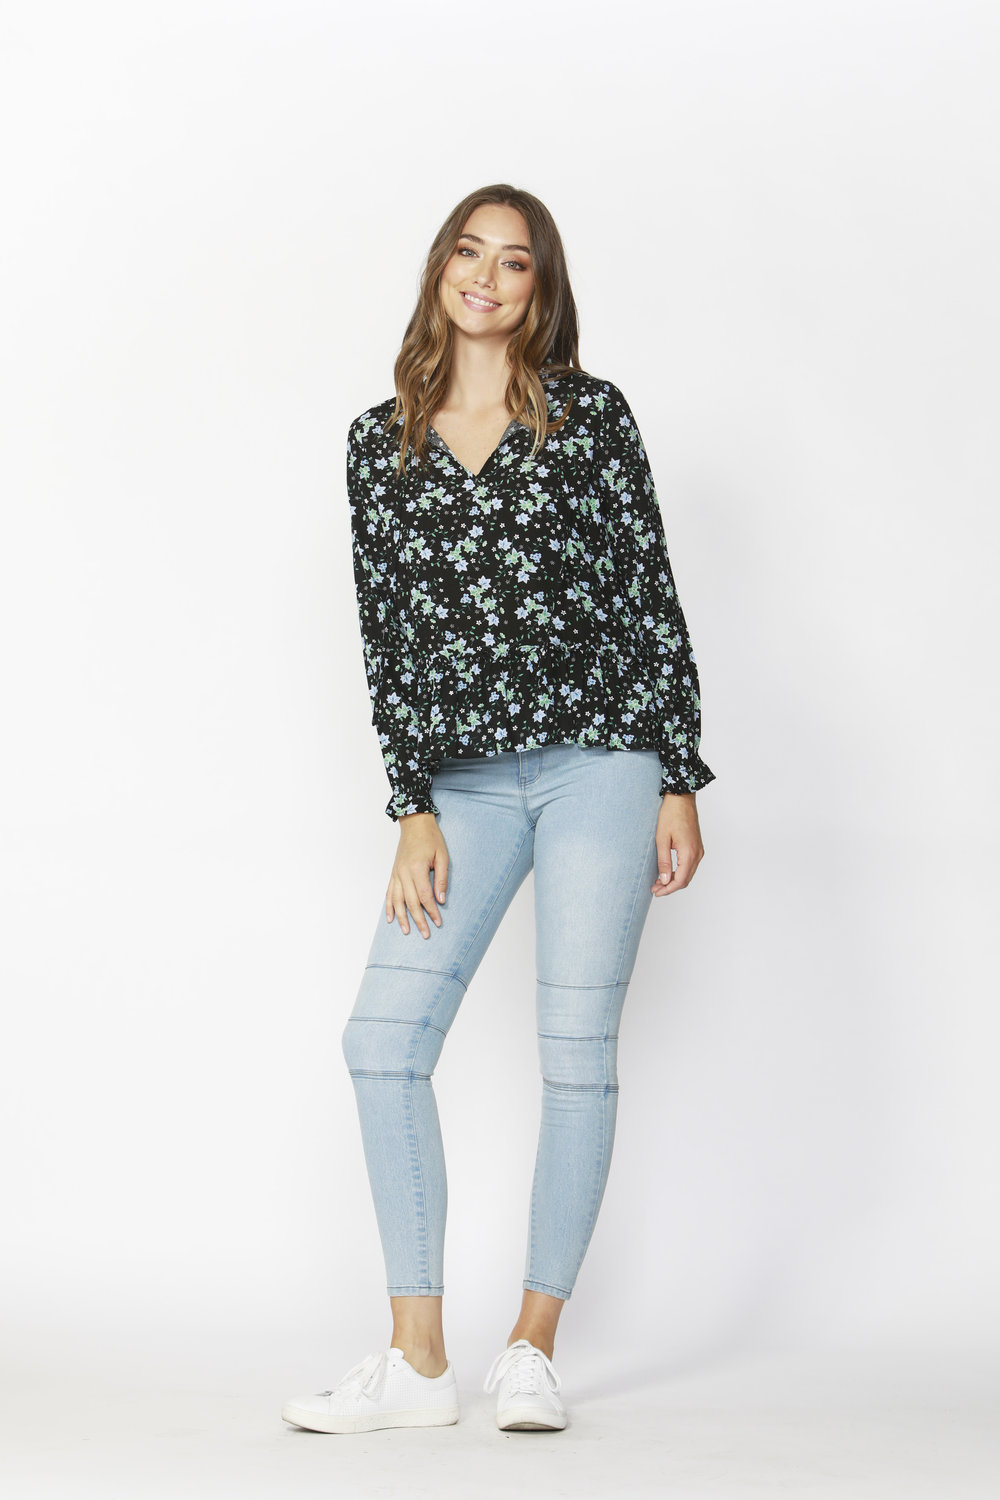 Winter Forest Frill Blouse (Winter Forest) - $65